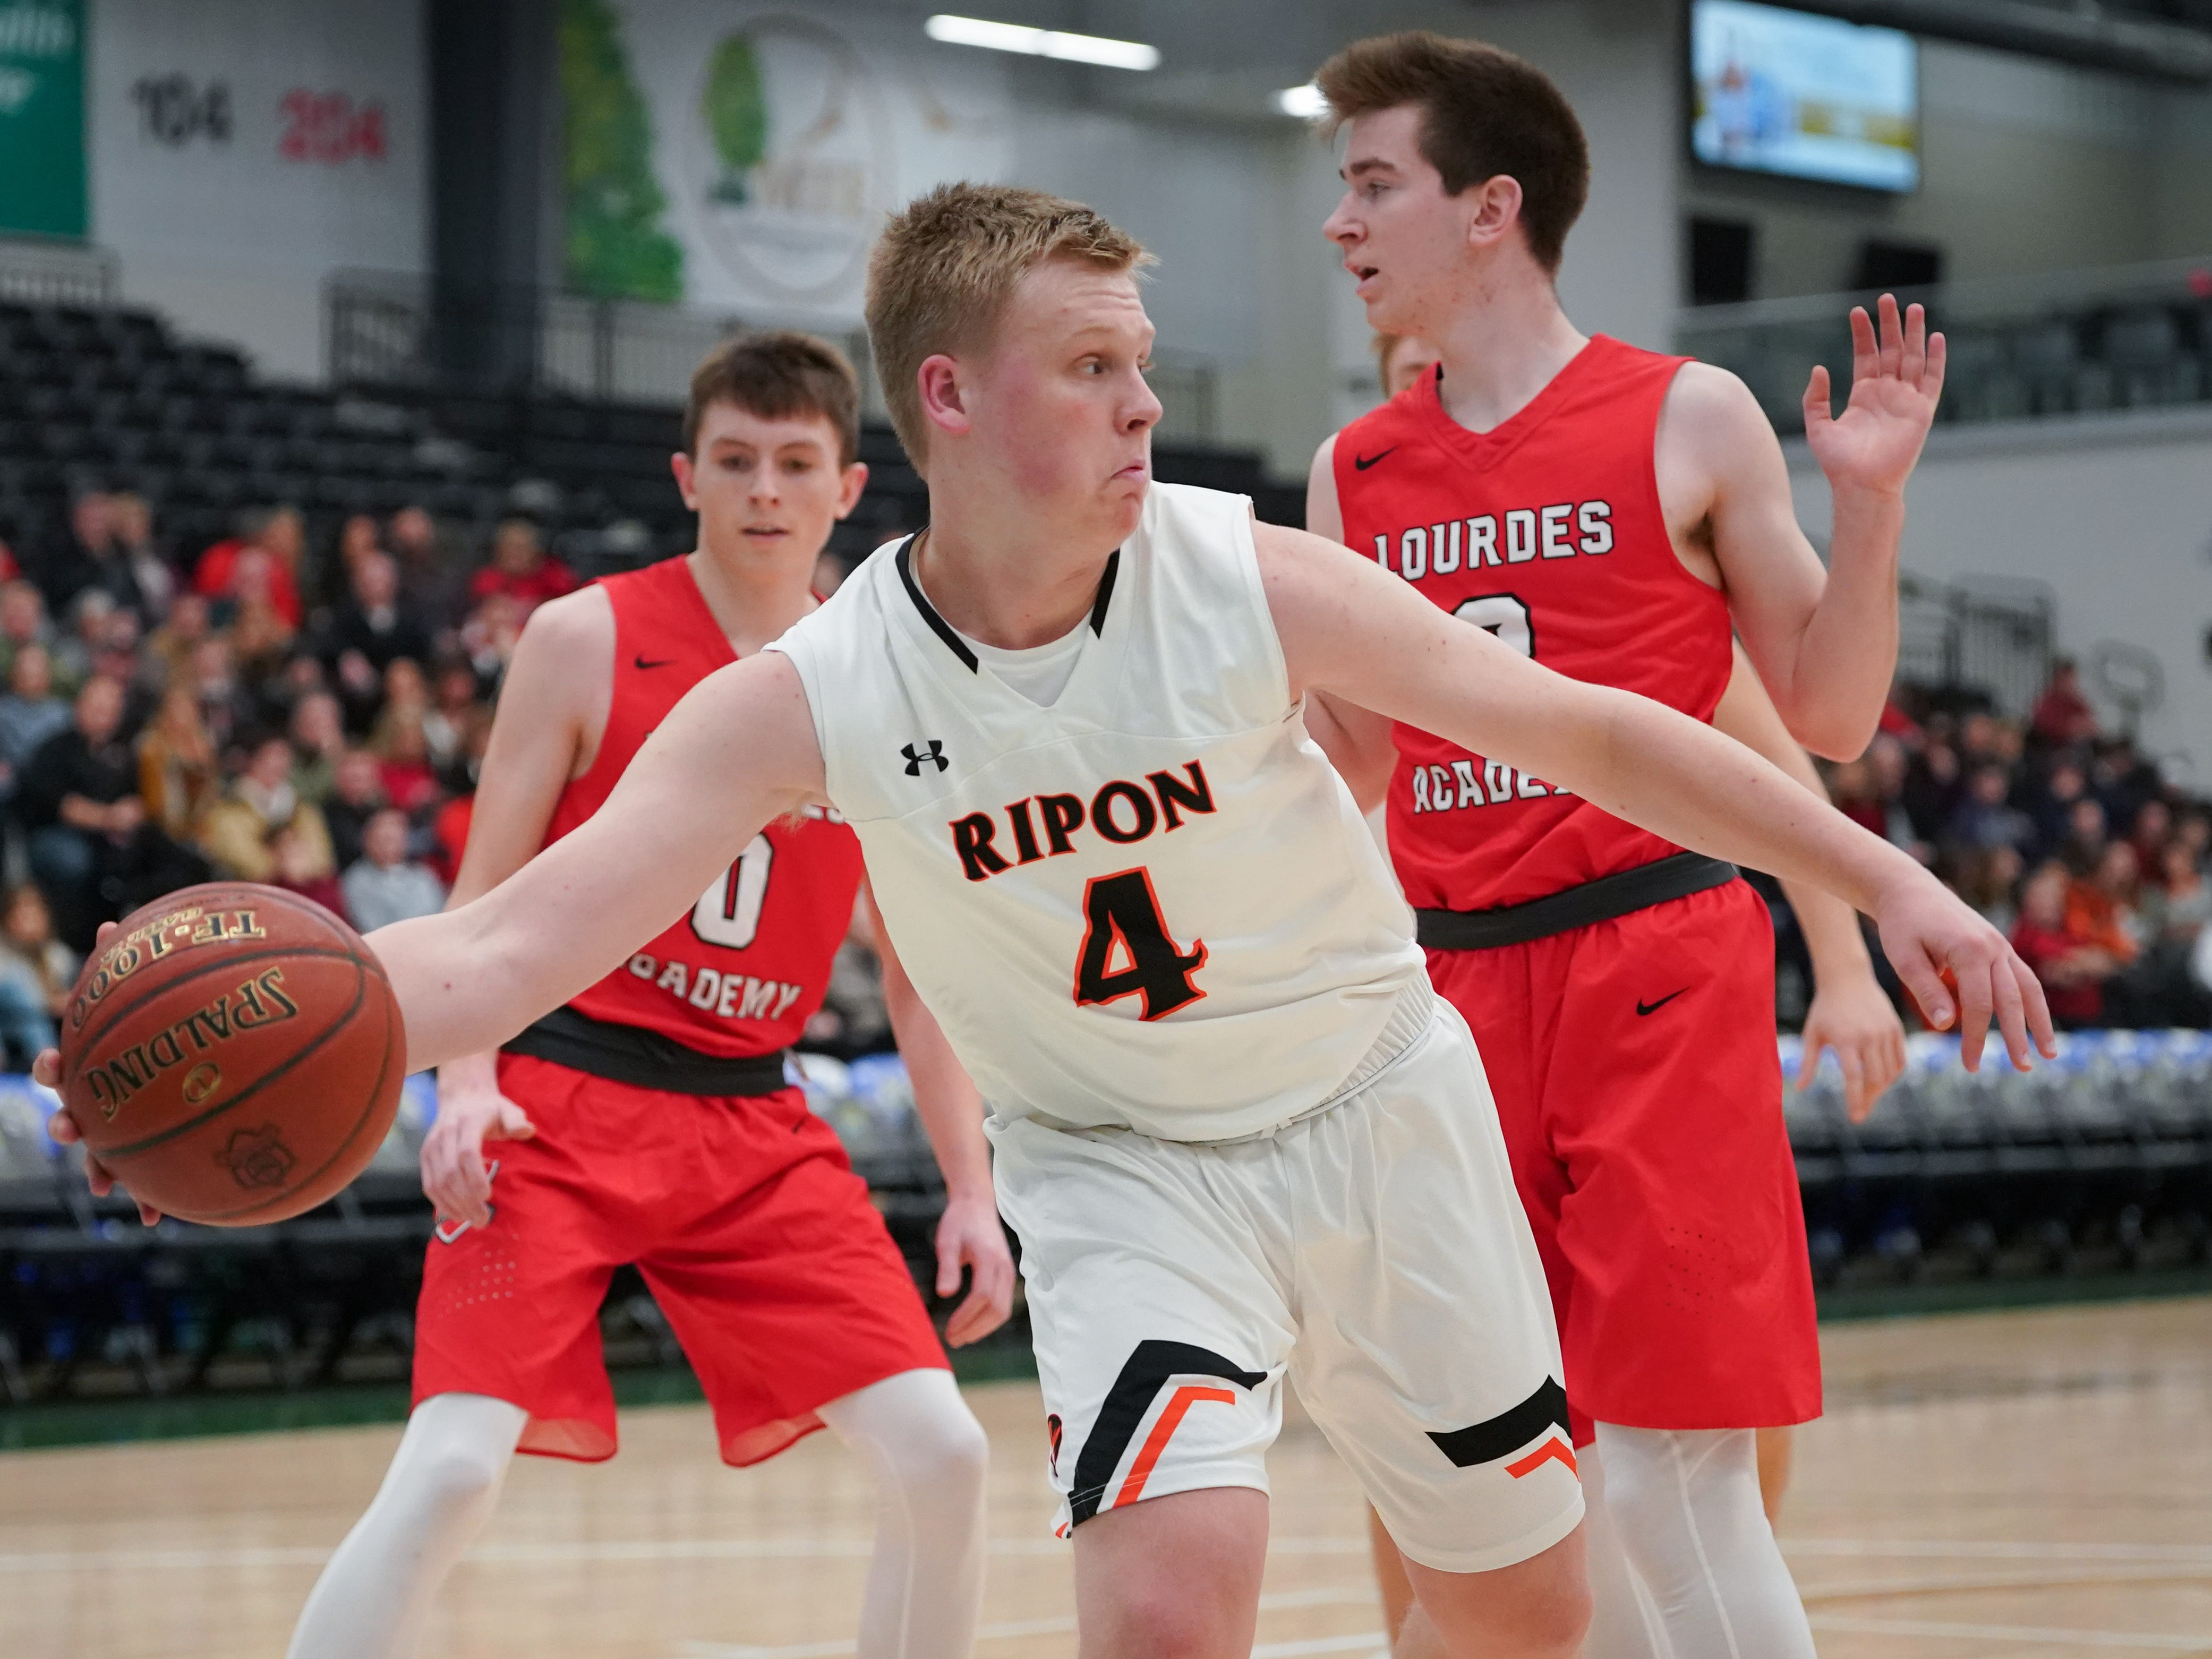 Hunter Auchtung (4) of Ripon grabs a rebound. The Lourdes Knights and Ripon Tigers met in a nonconference basketball game Saturday afternoon, December 29, 2018 at the Menomonie Nation Arena in Oshkosh.